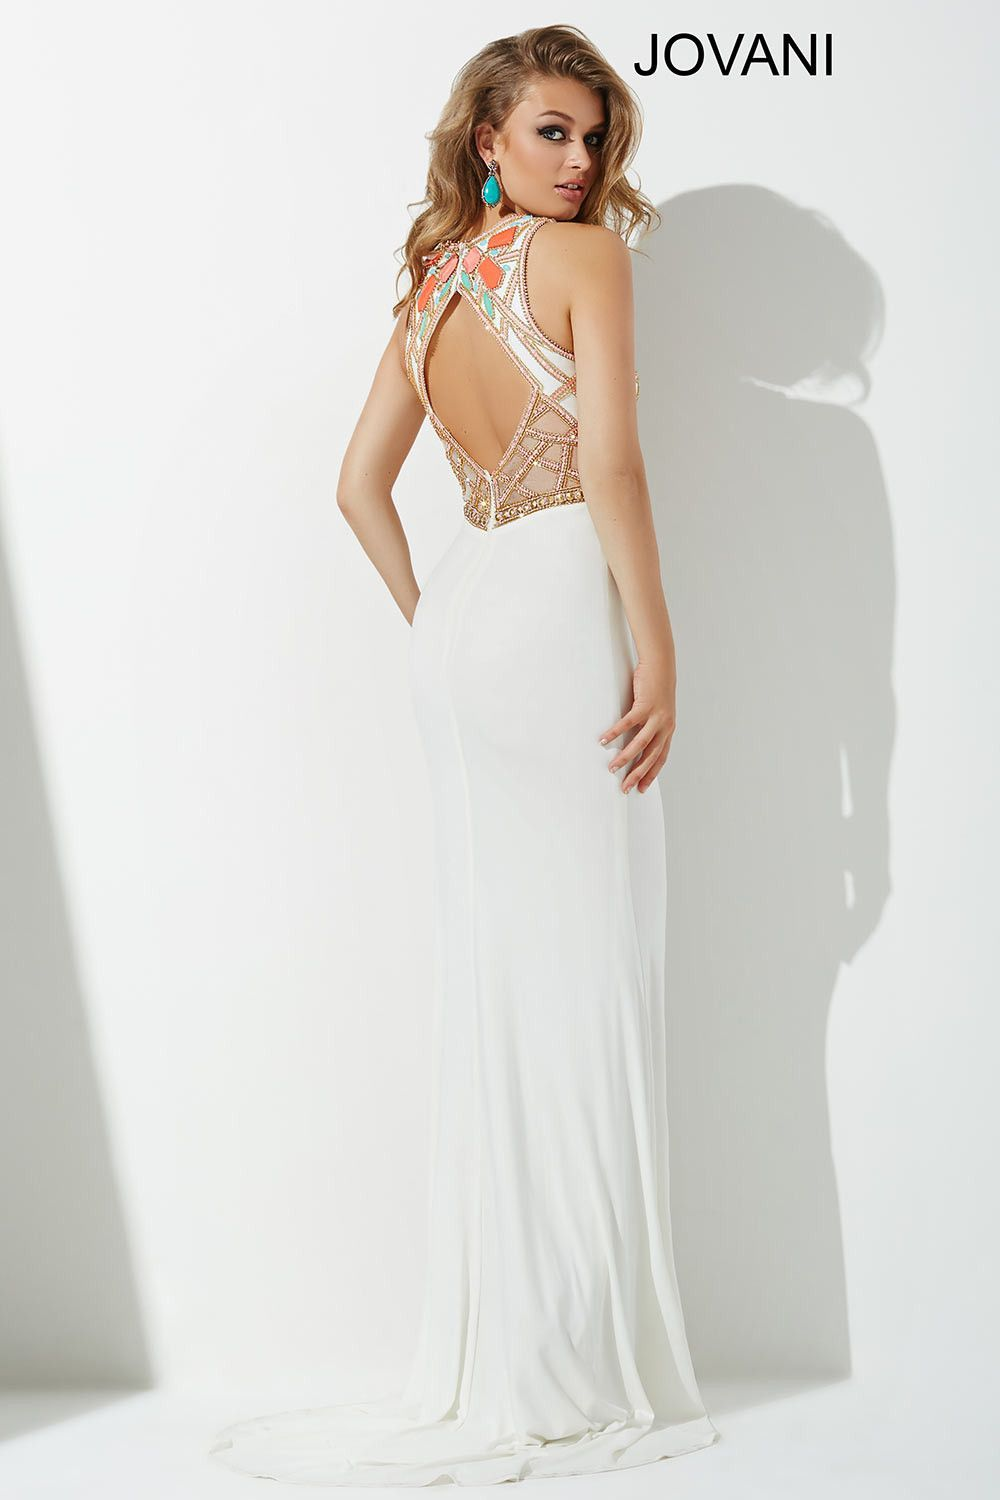 Jovani 33408 In Stock Size 4 White Stone Embellished Prom Dress ...